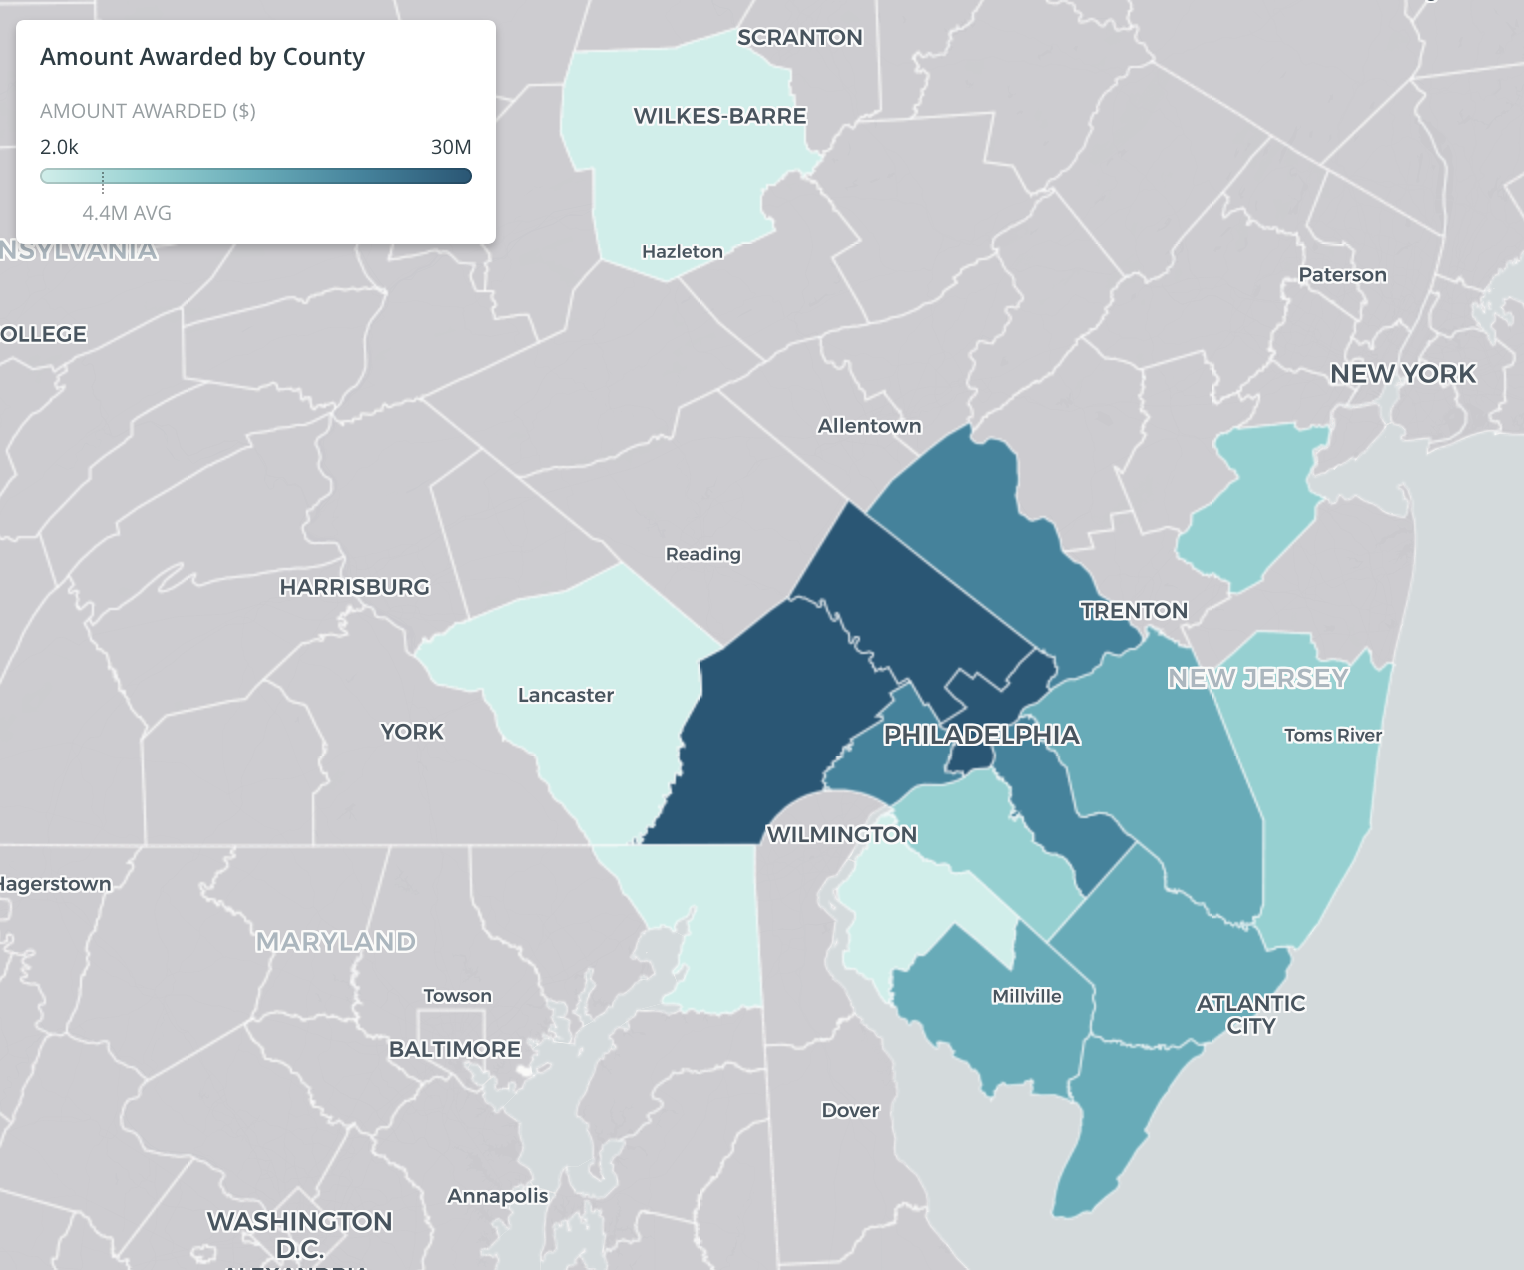 Grants by county in PA and southern NJ